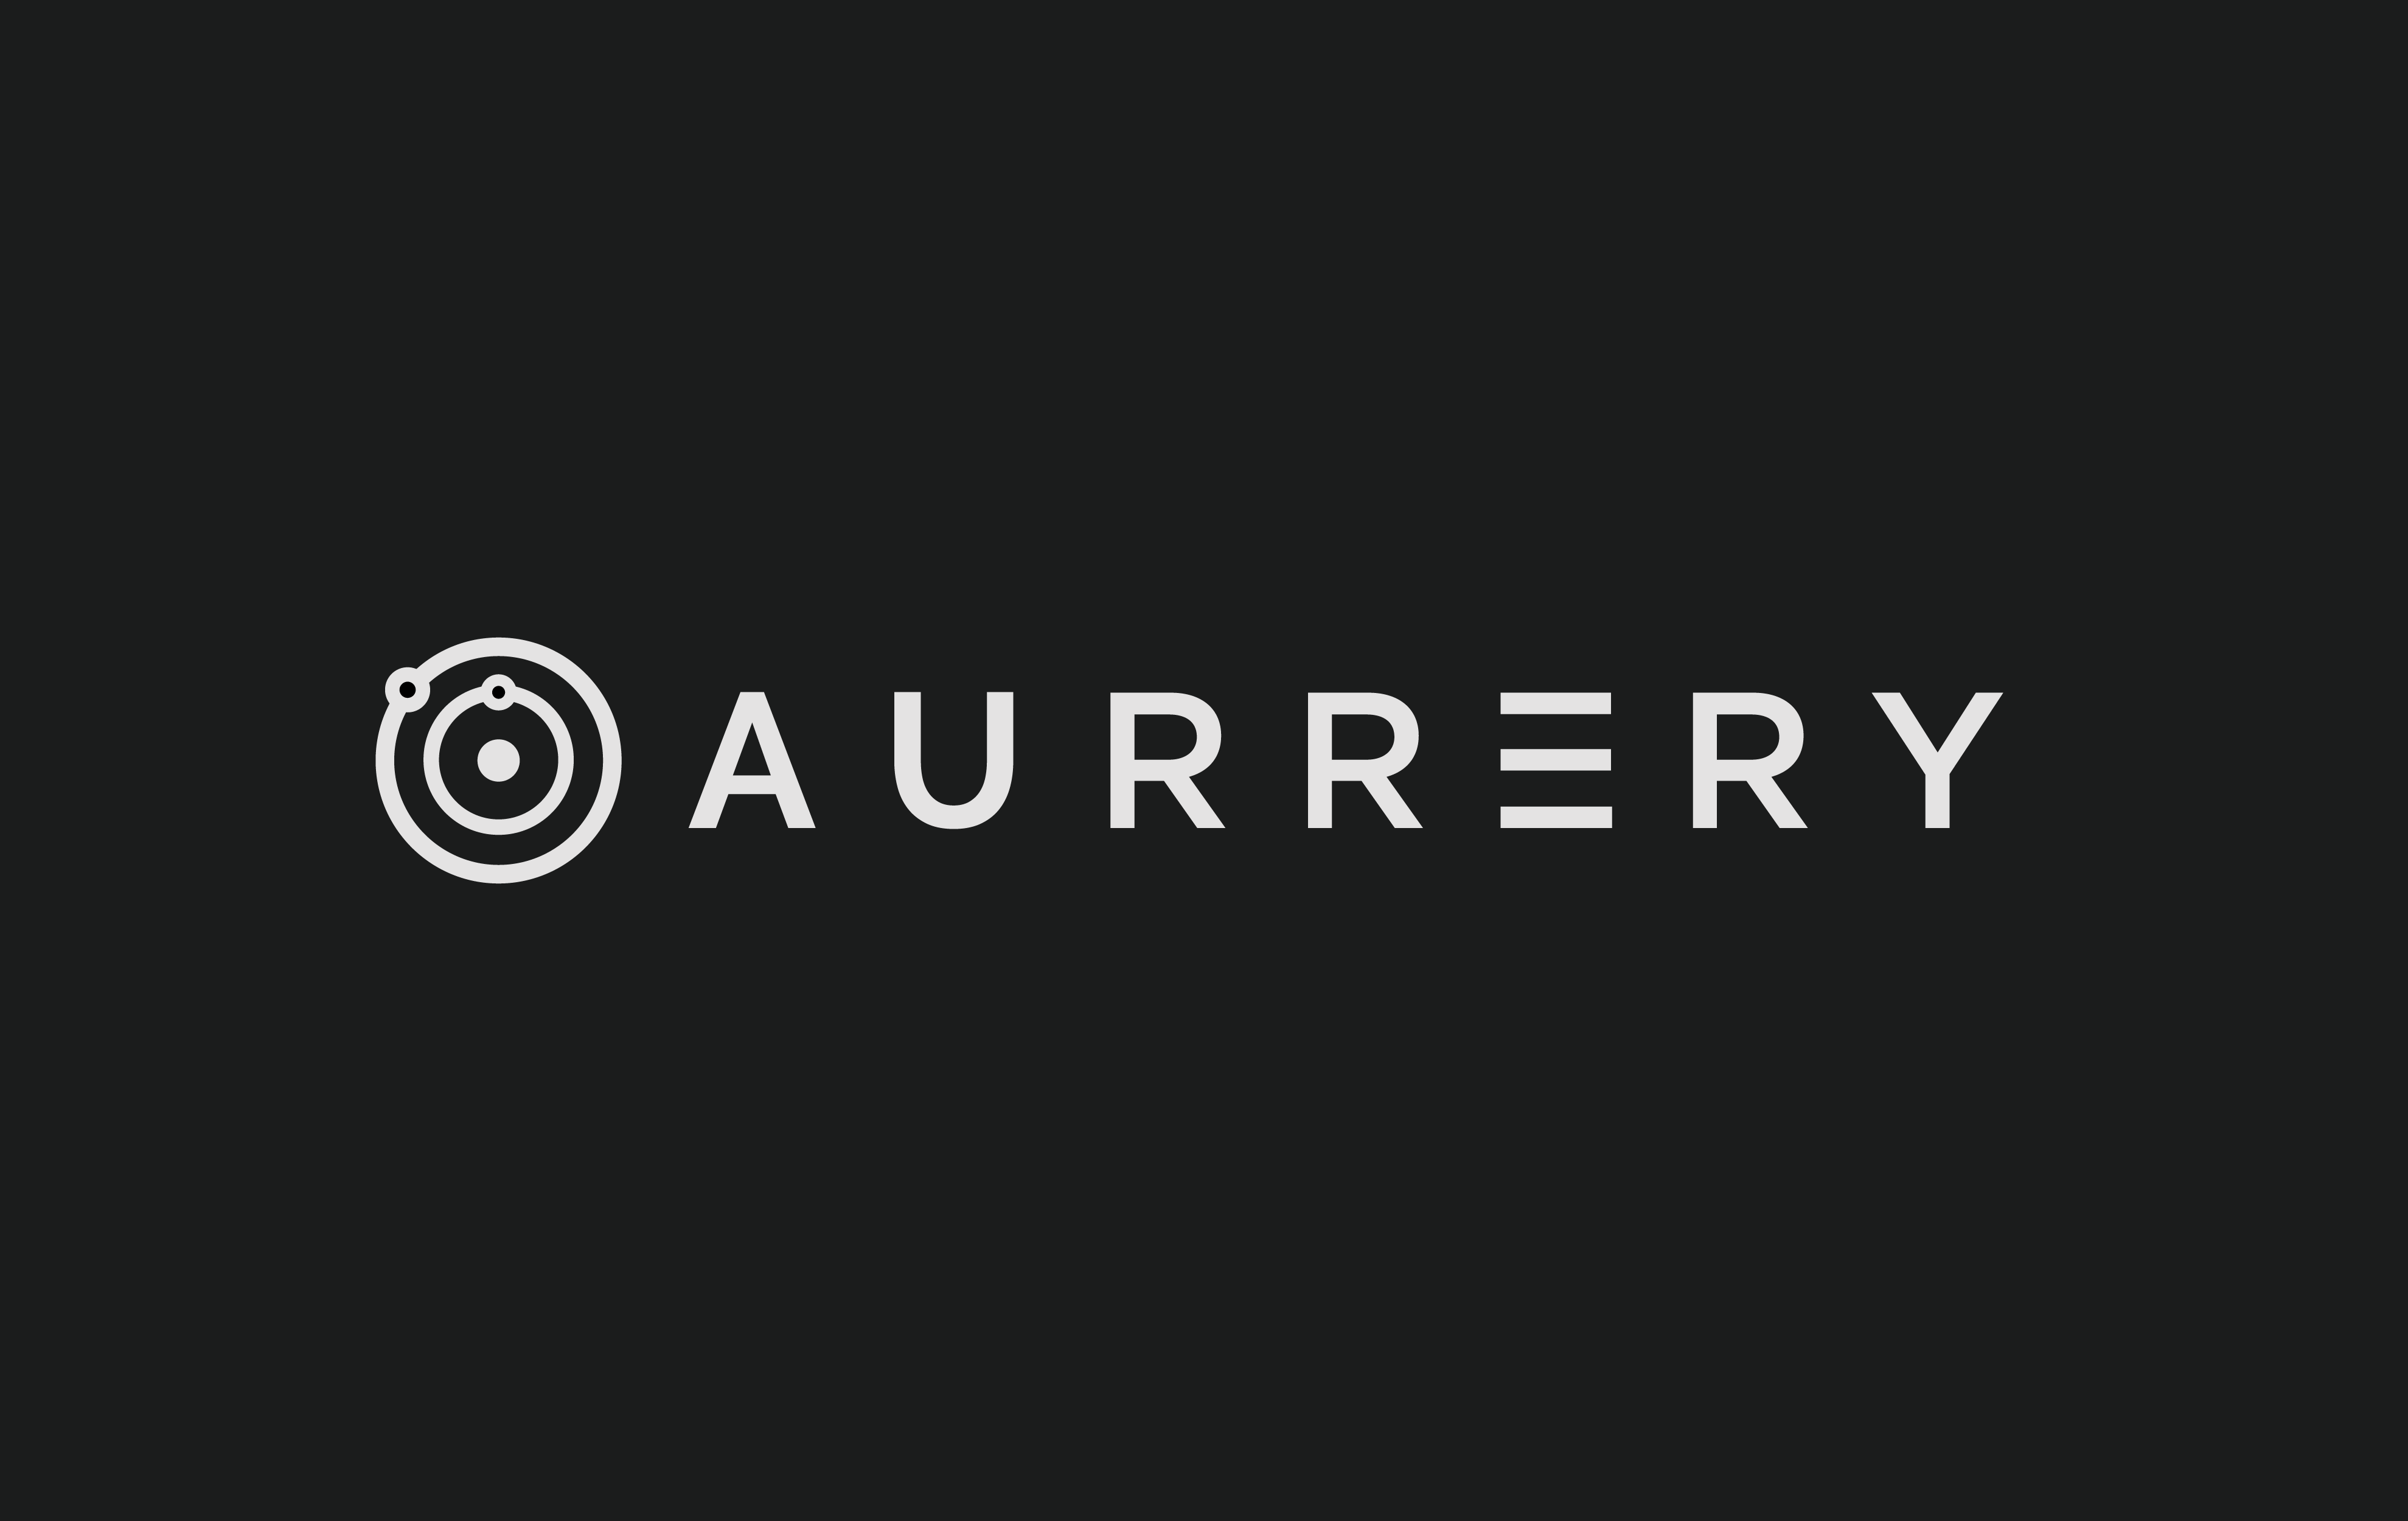 Aurrery - 3D Music Software/ Space game  - Release